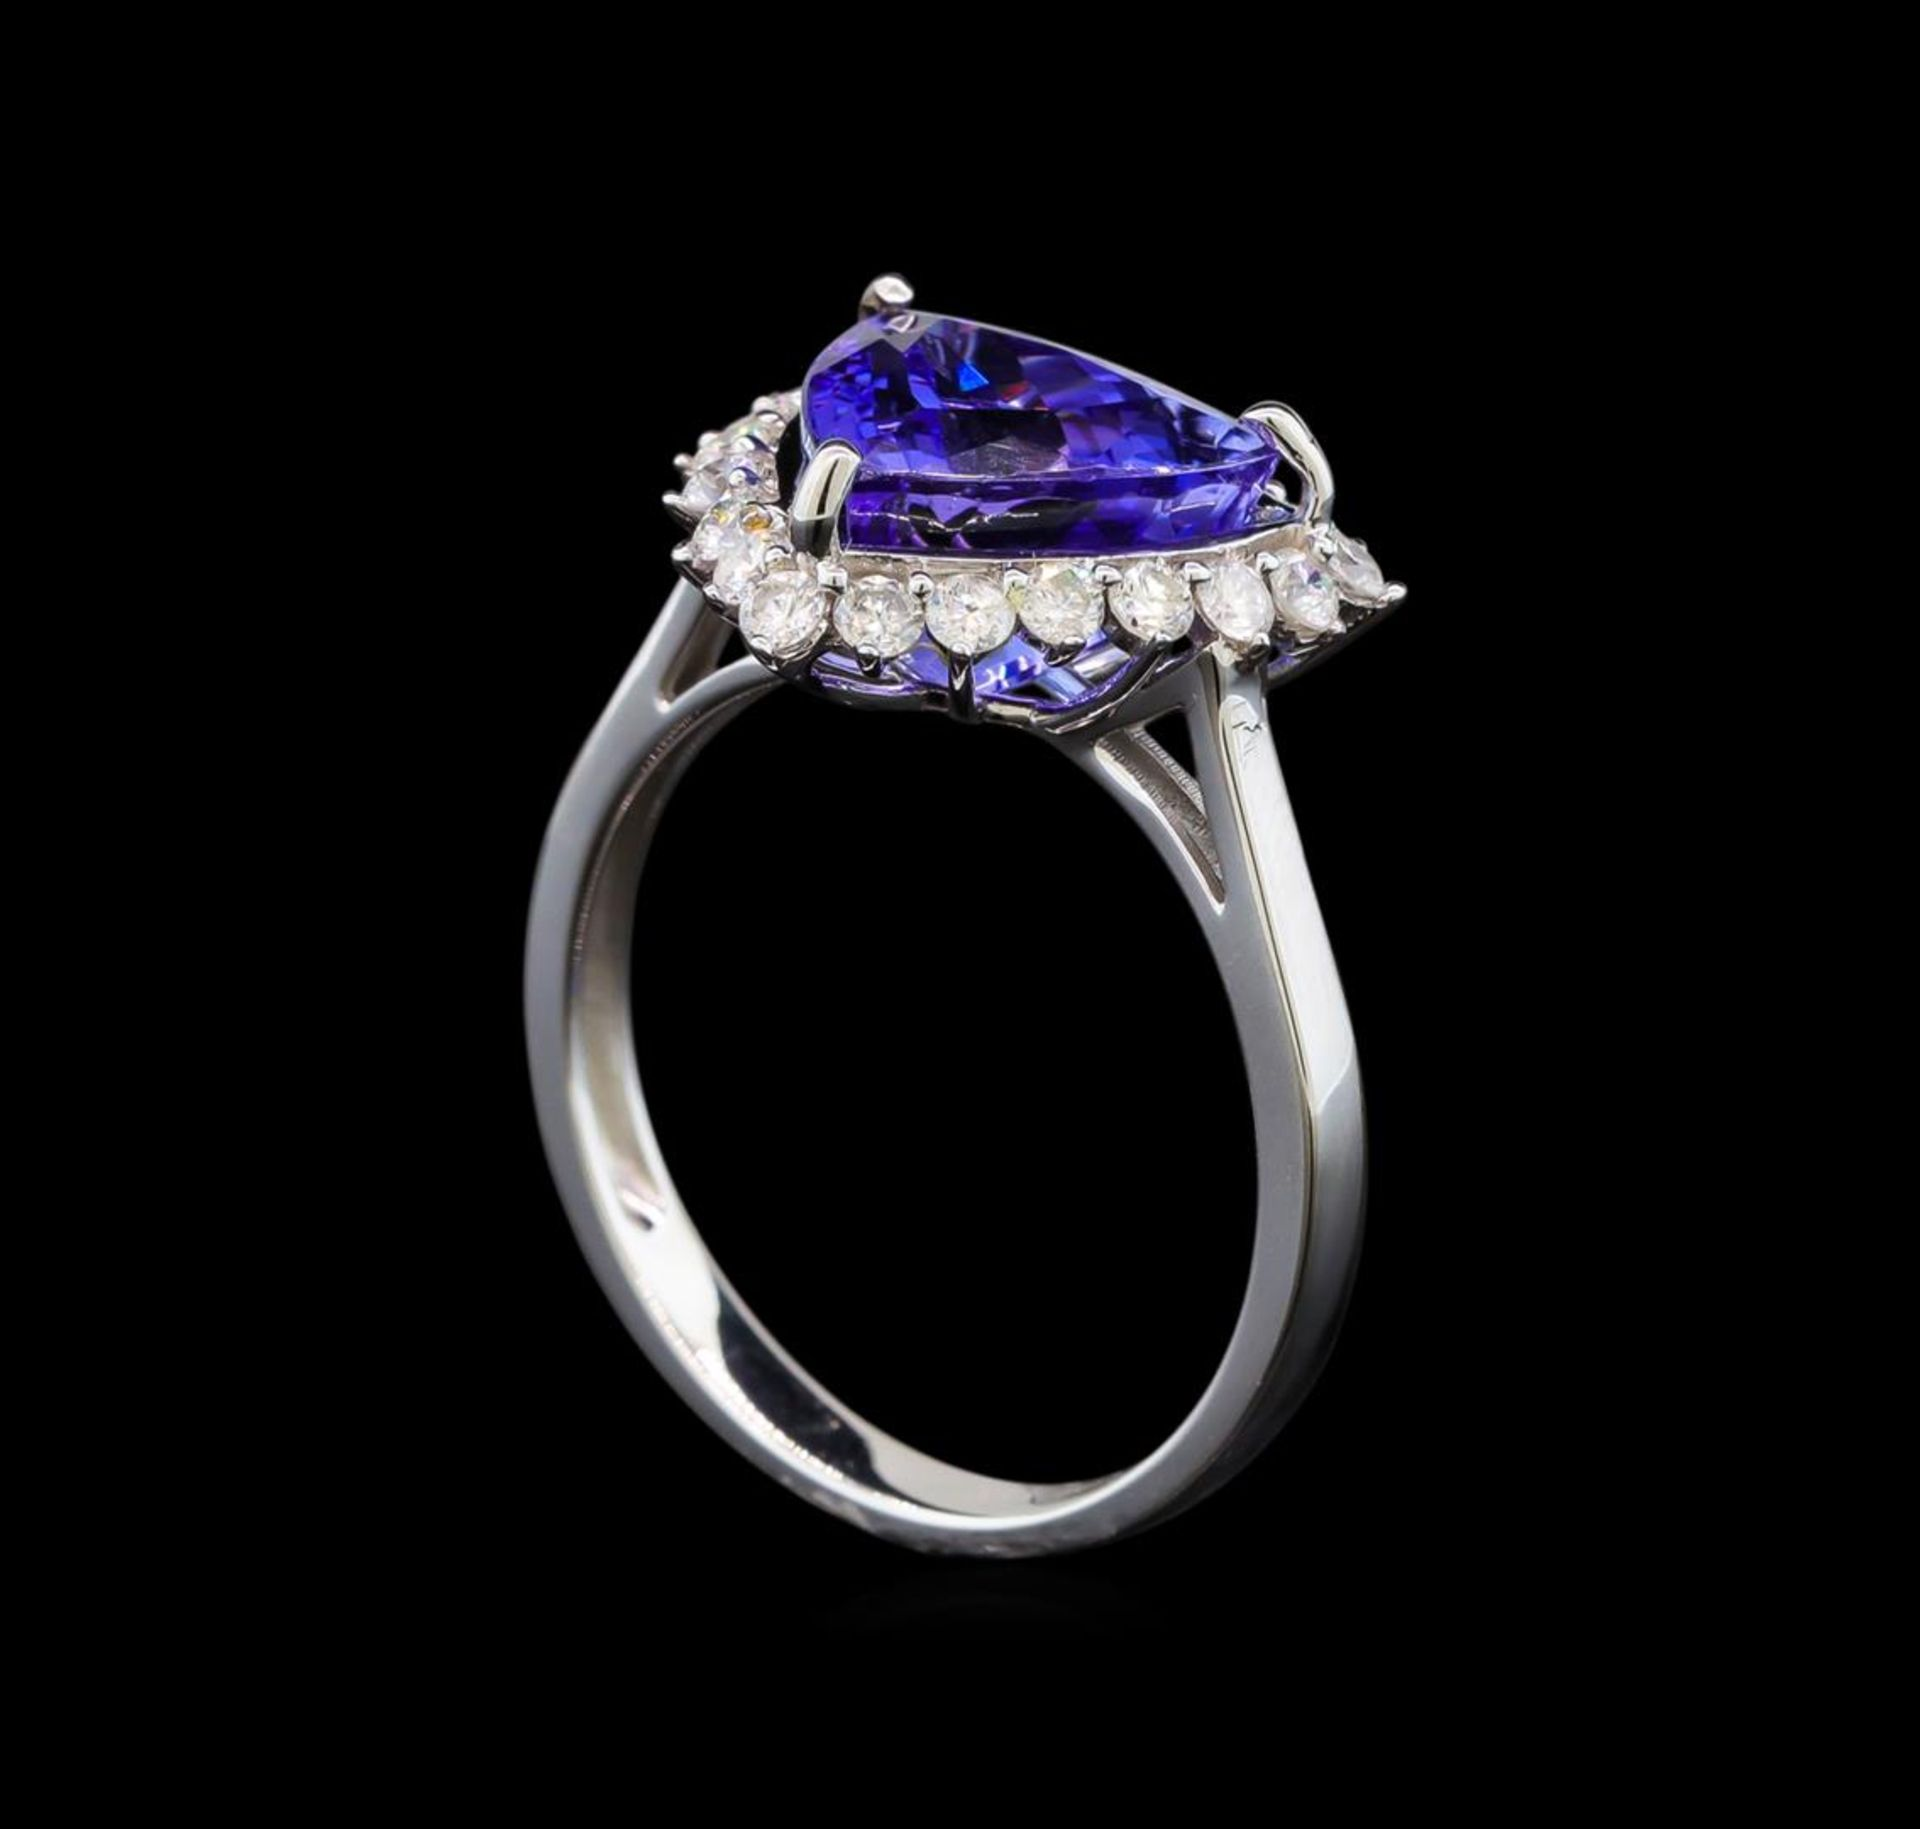 14KT White Gold 2.78 ctw Tanzanite and Diamond Ring - Image 4 of 5